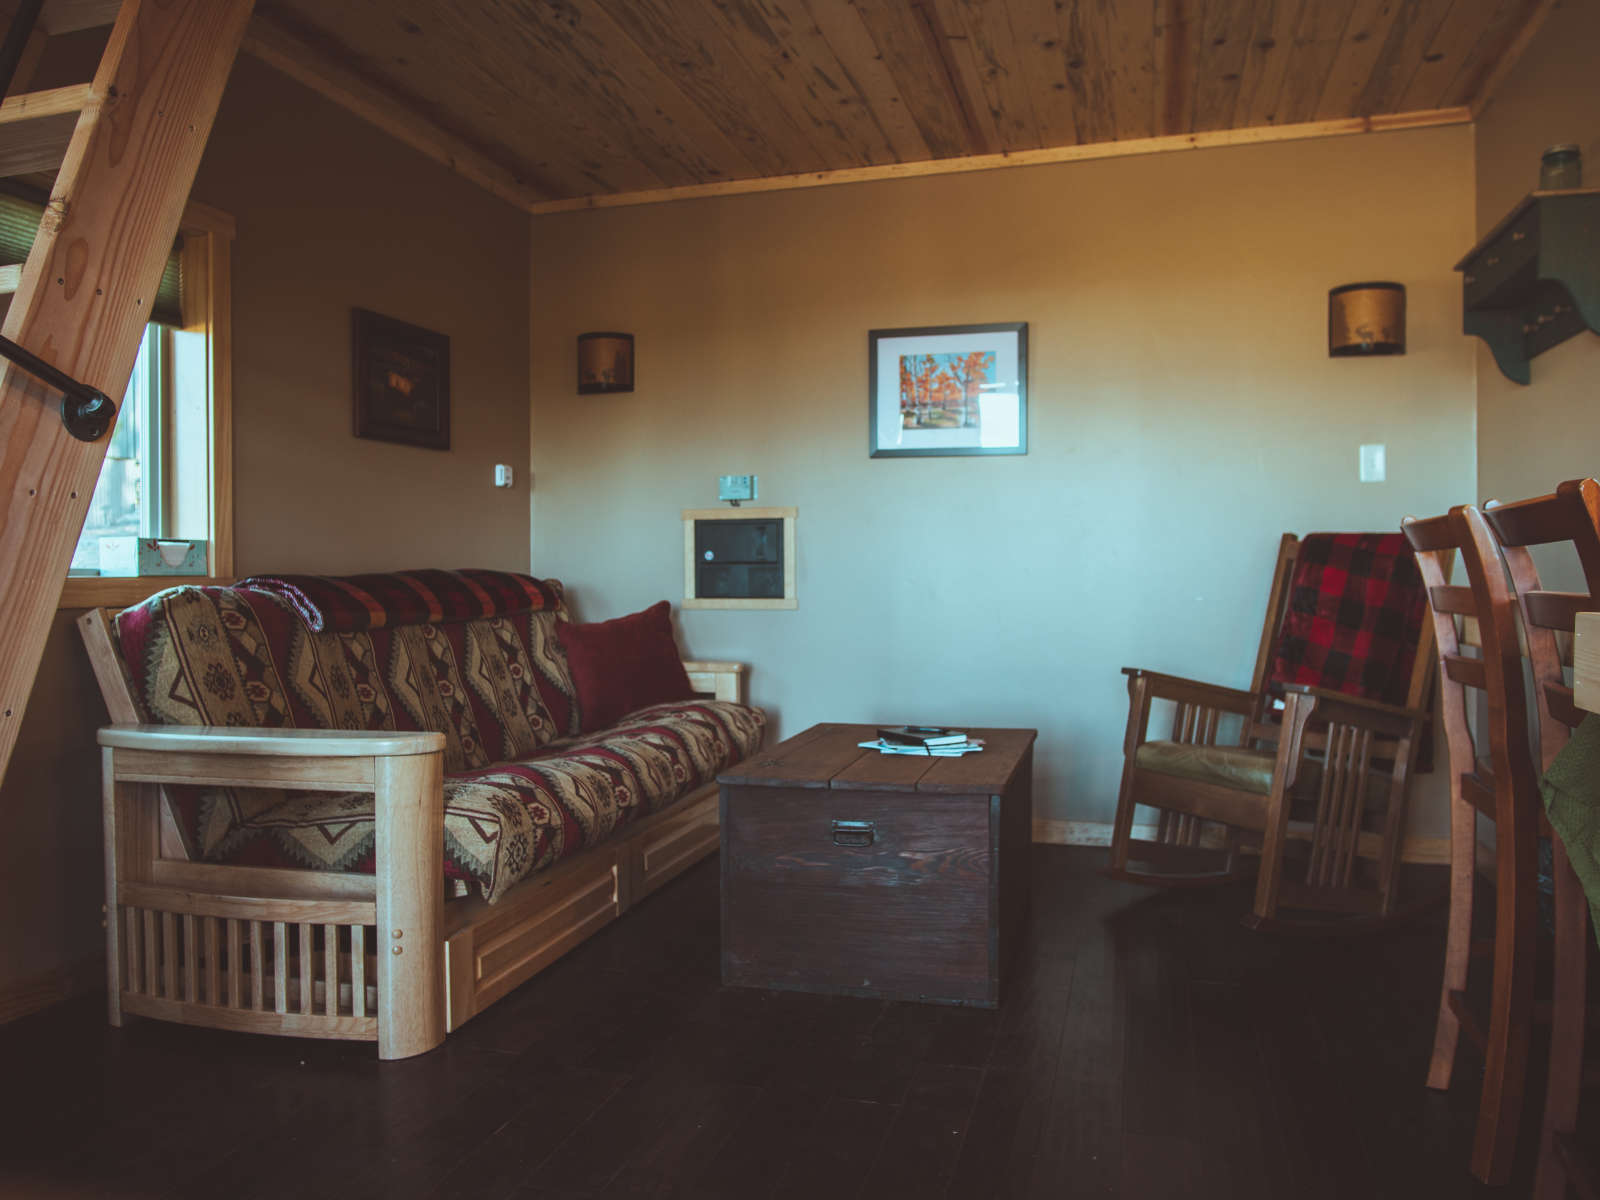 Long View Lodge, Long View Lodge, CO: 33 Hipcamper reviews and 130 ...